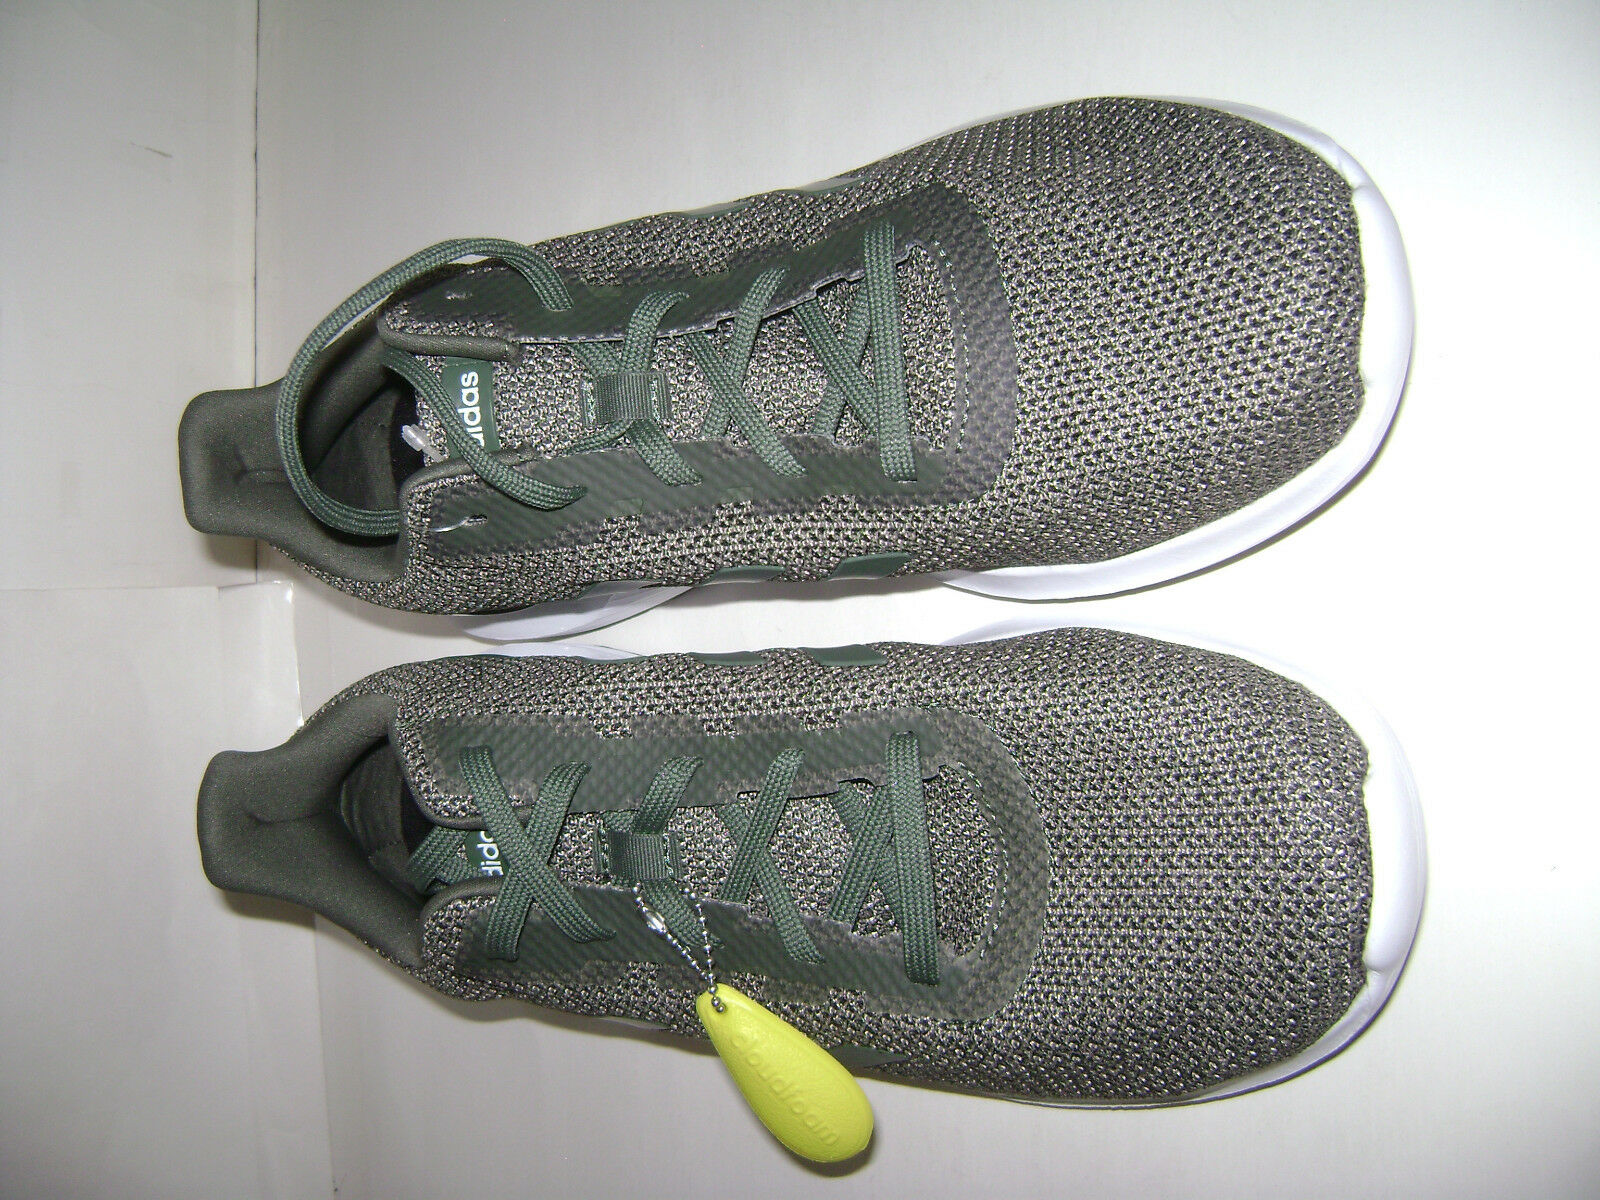 NIB adidas cloudfoam cloudfoam cloudfoam Men COSMIC 2 Running Sneakers shoes Sz 10.5 Green B44733 a12a31